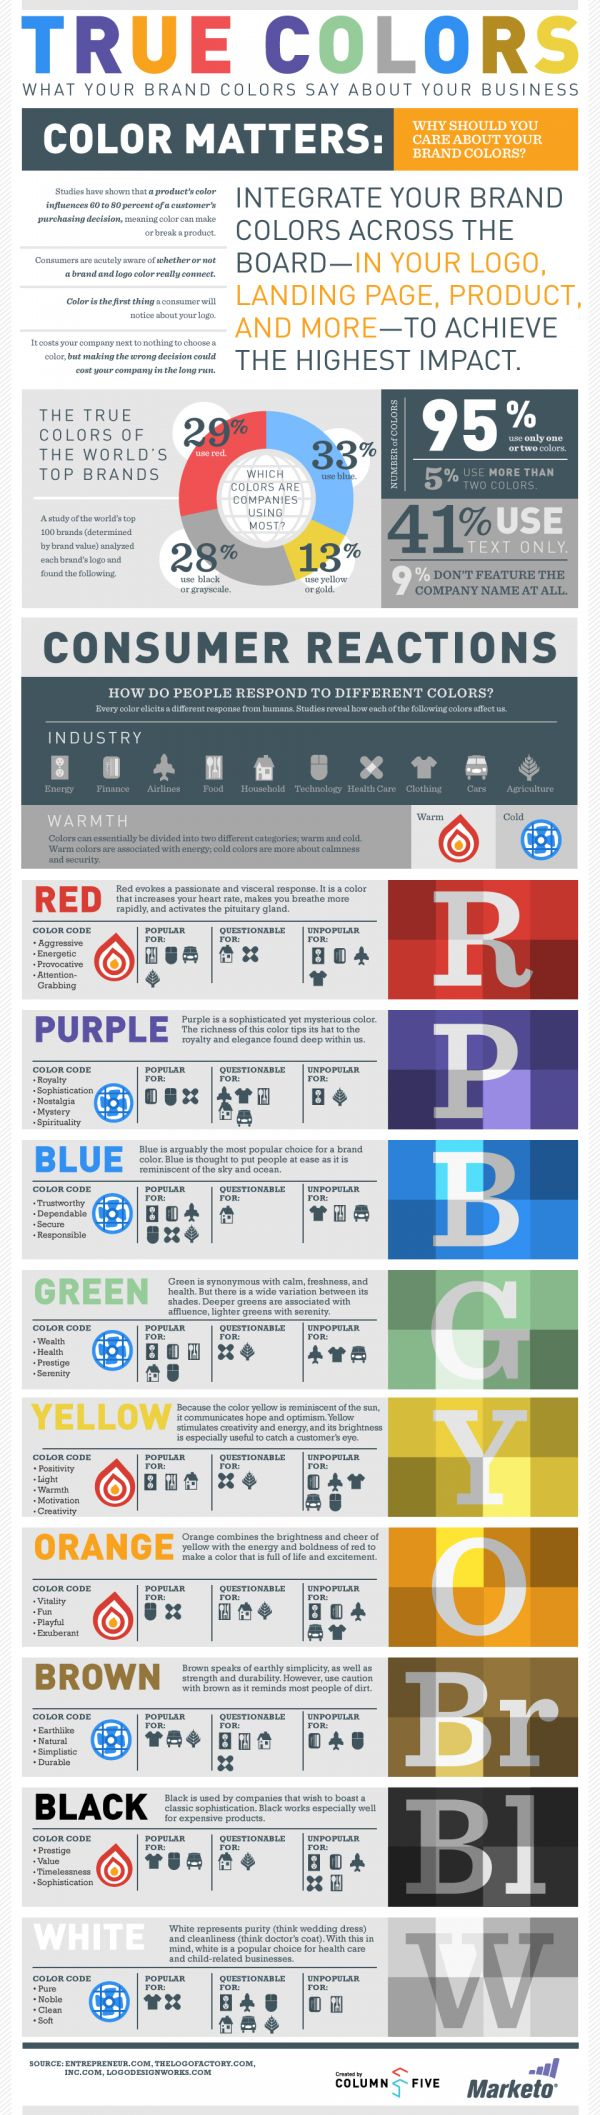 True Colors: What your brand colors say about your business.